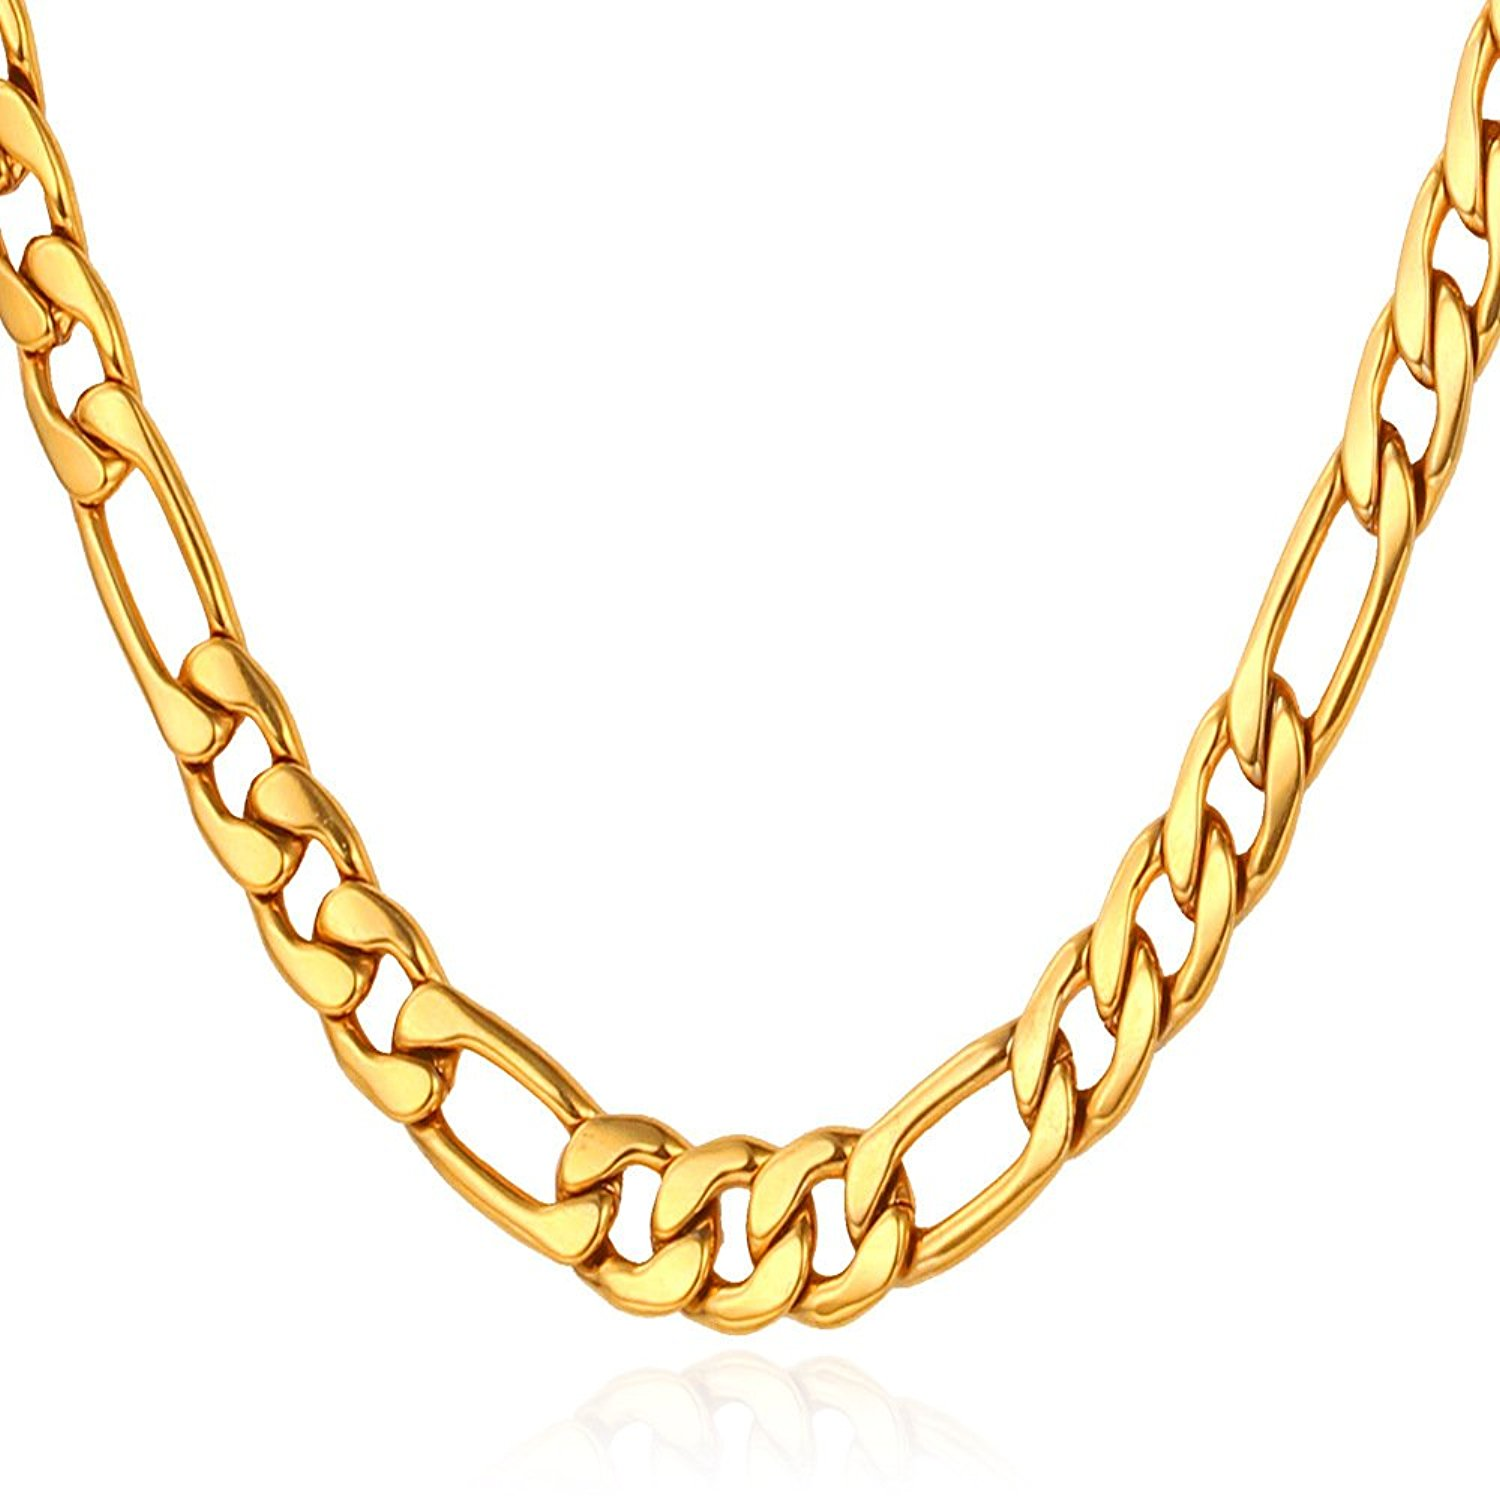 U7 Stainless Steel Chain 5MM Men Women Necklace Figaro Chain Length 18-30 Inch